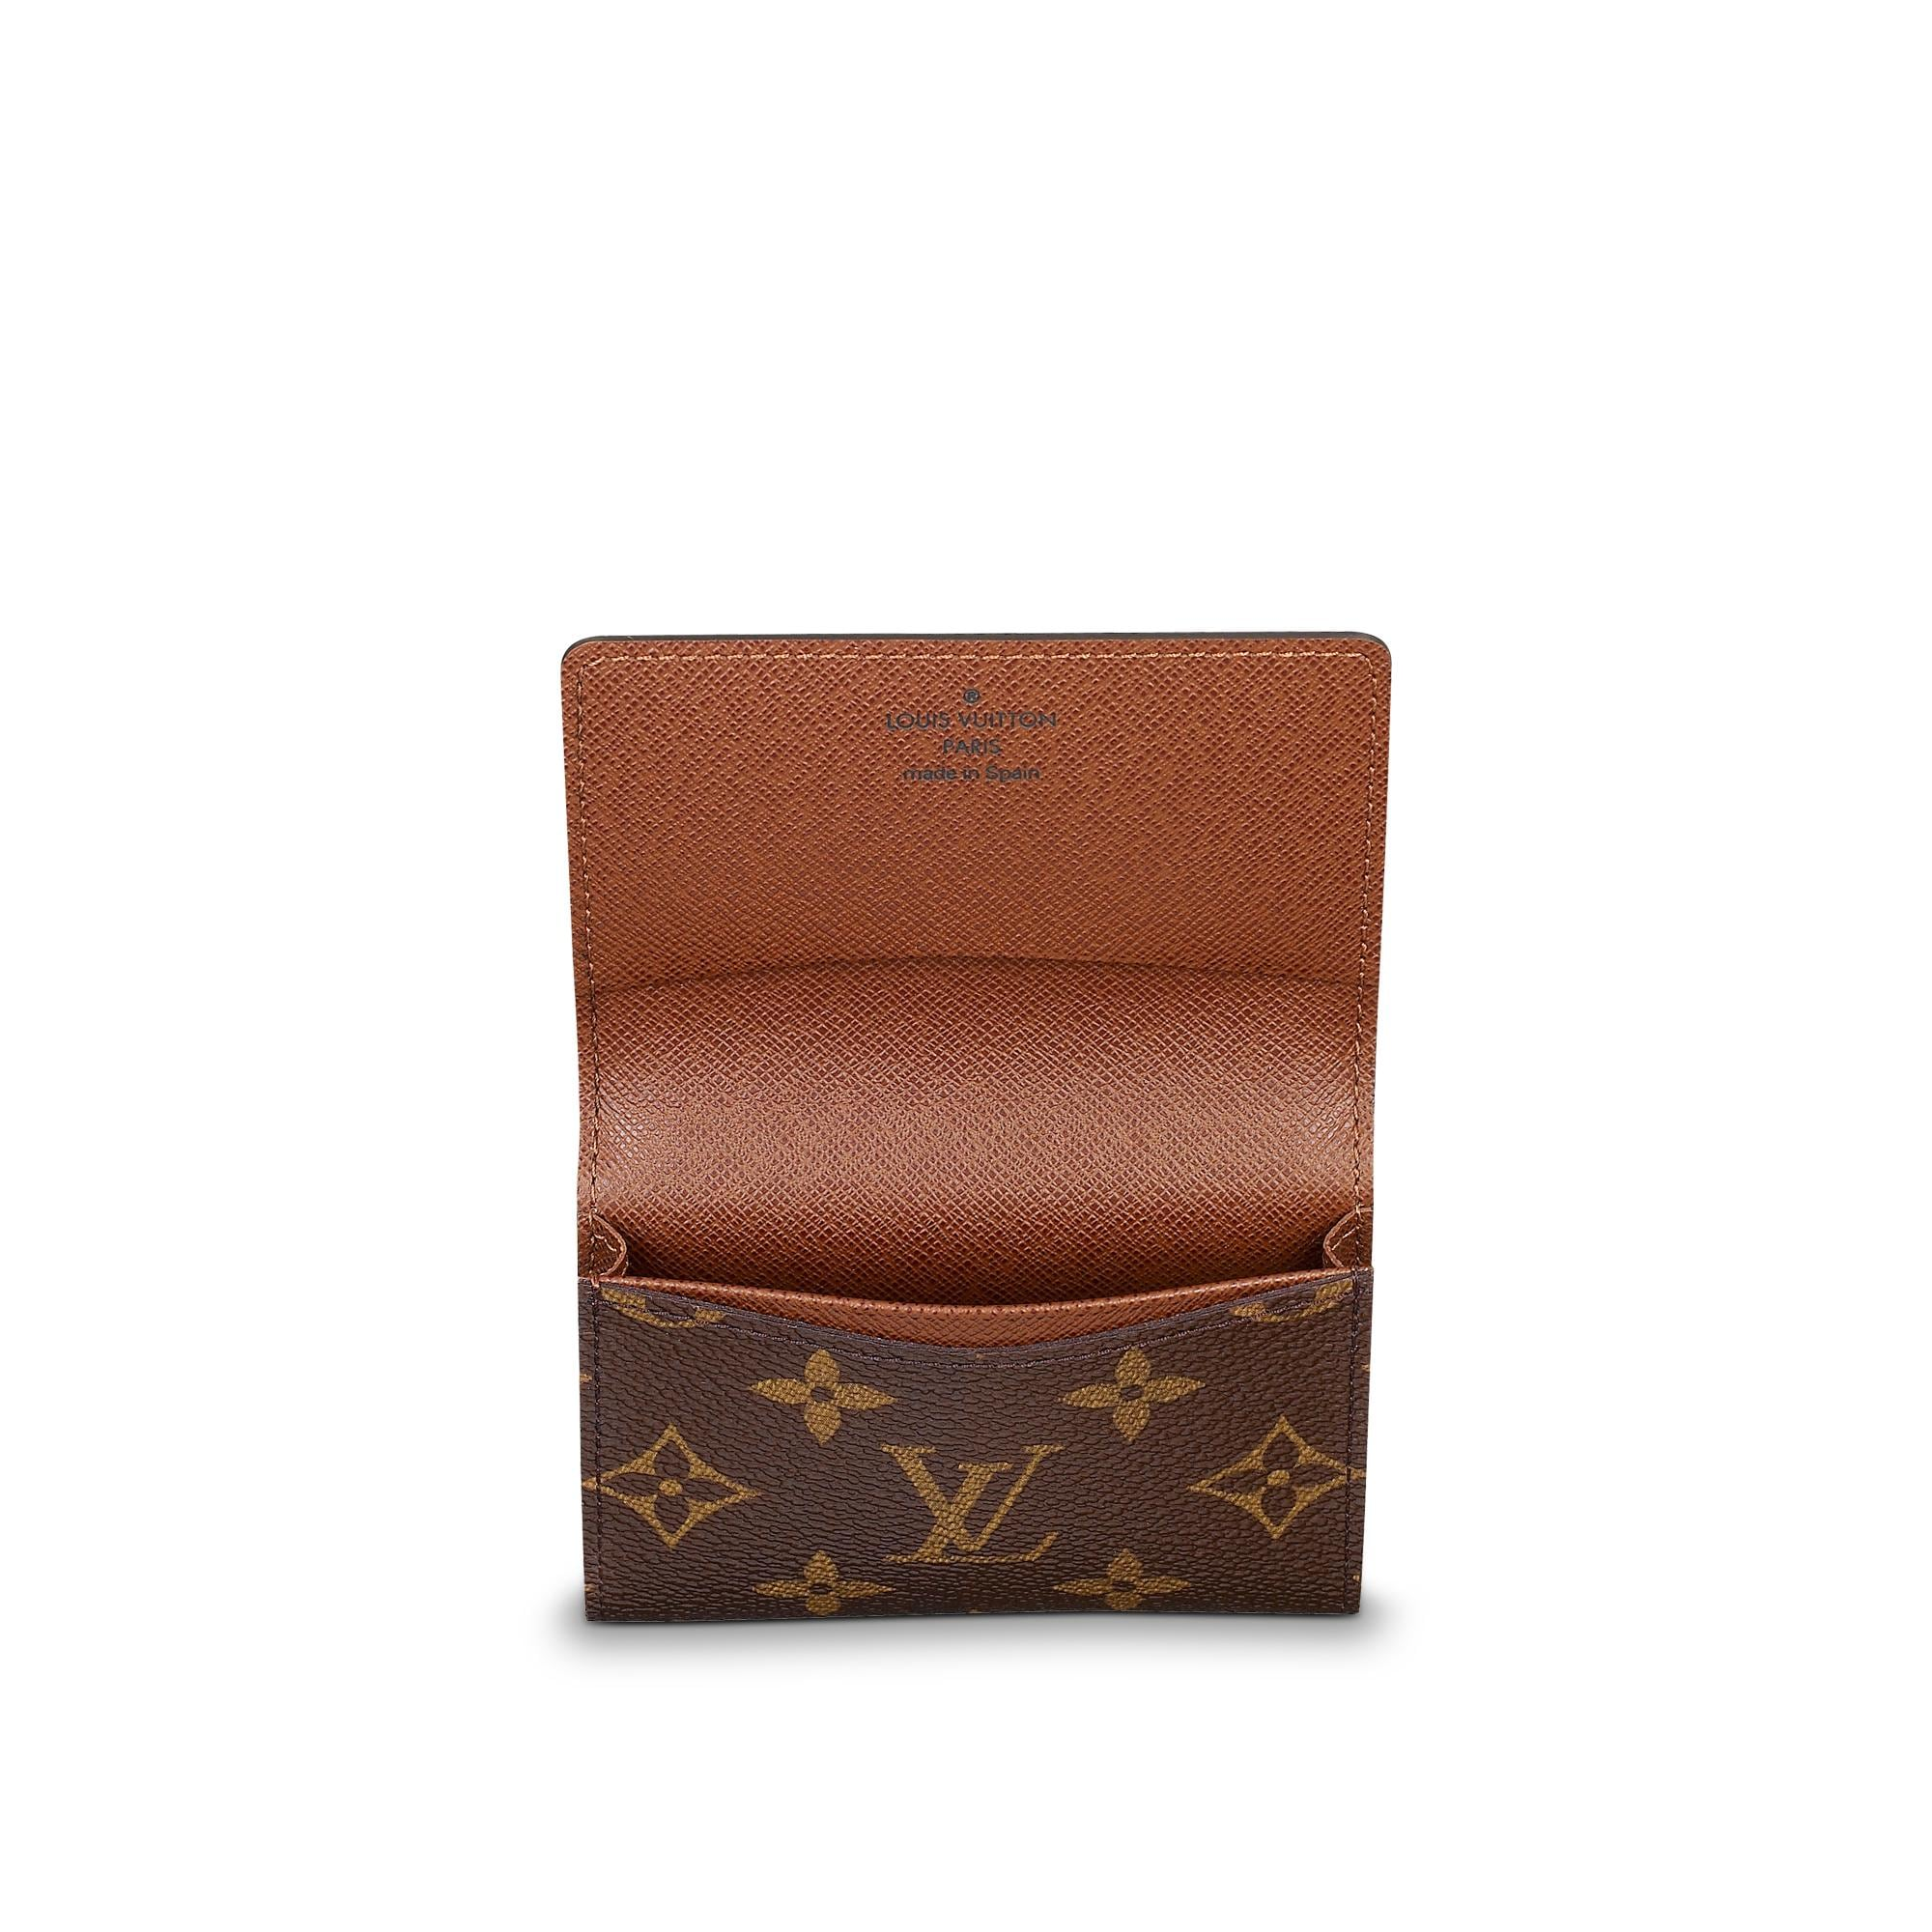 Business Card Holder Monogram  SMALL LEATHER GOODS  LOUIS VUITTON